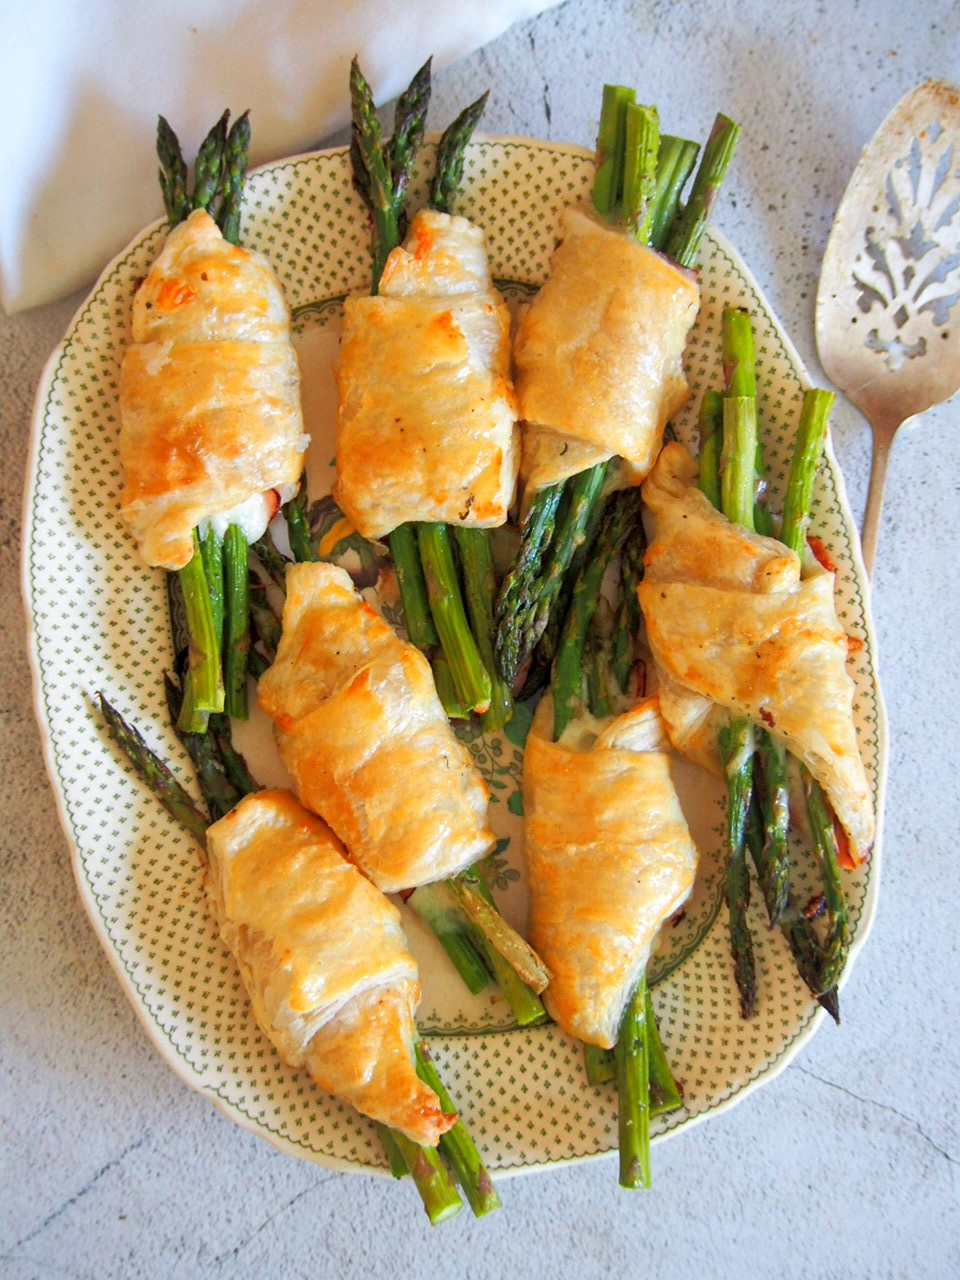 The Asparagus Puff Pastry Pockets on a serving plate.